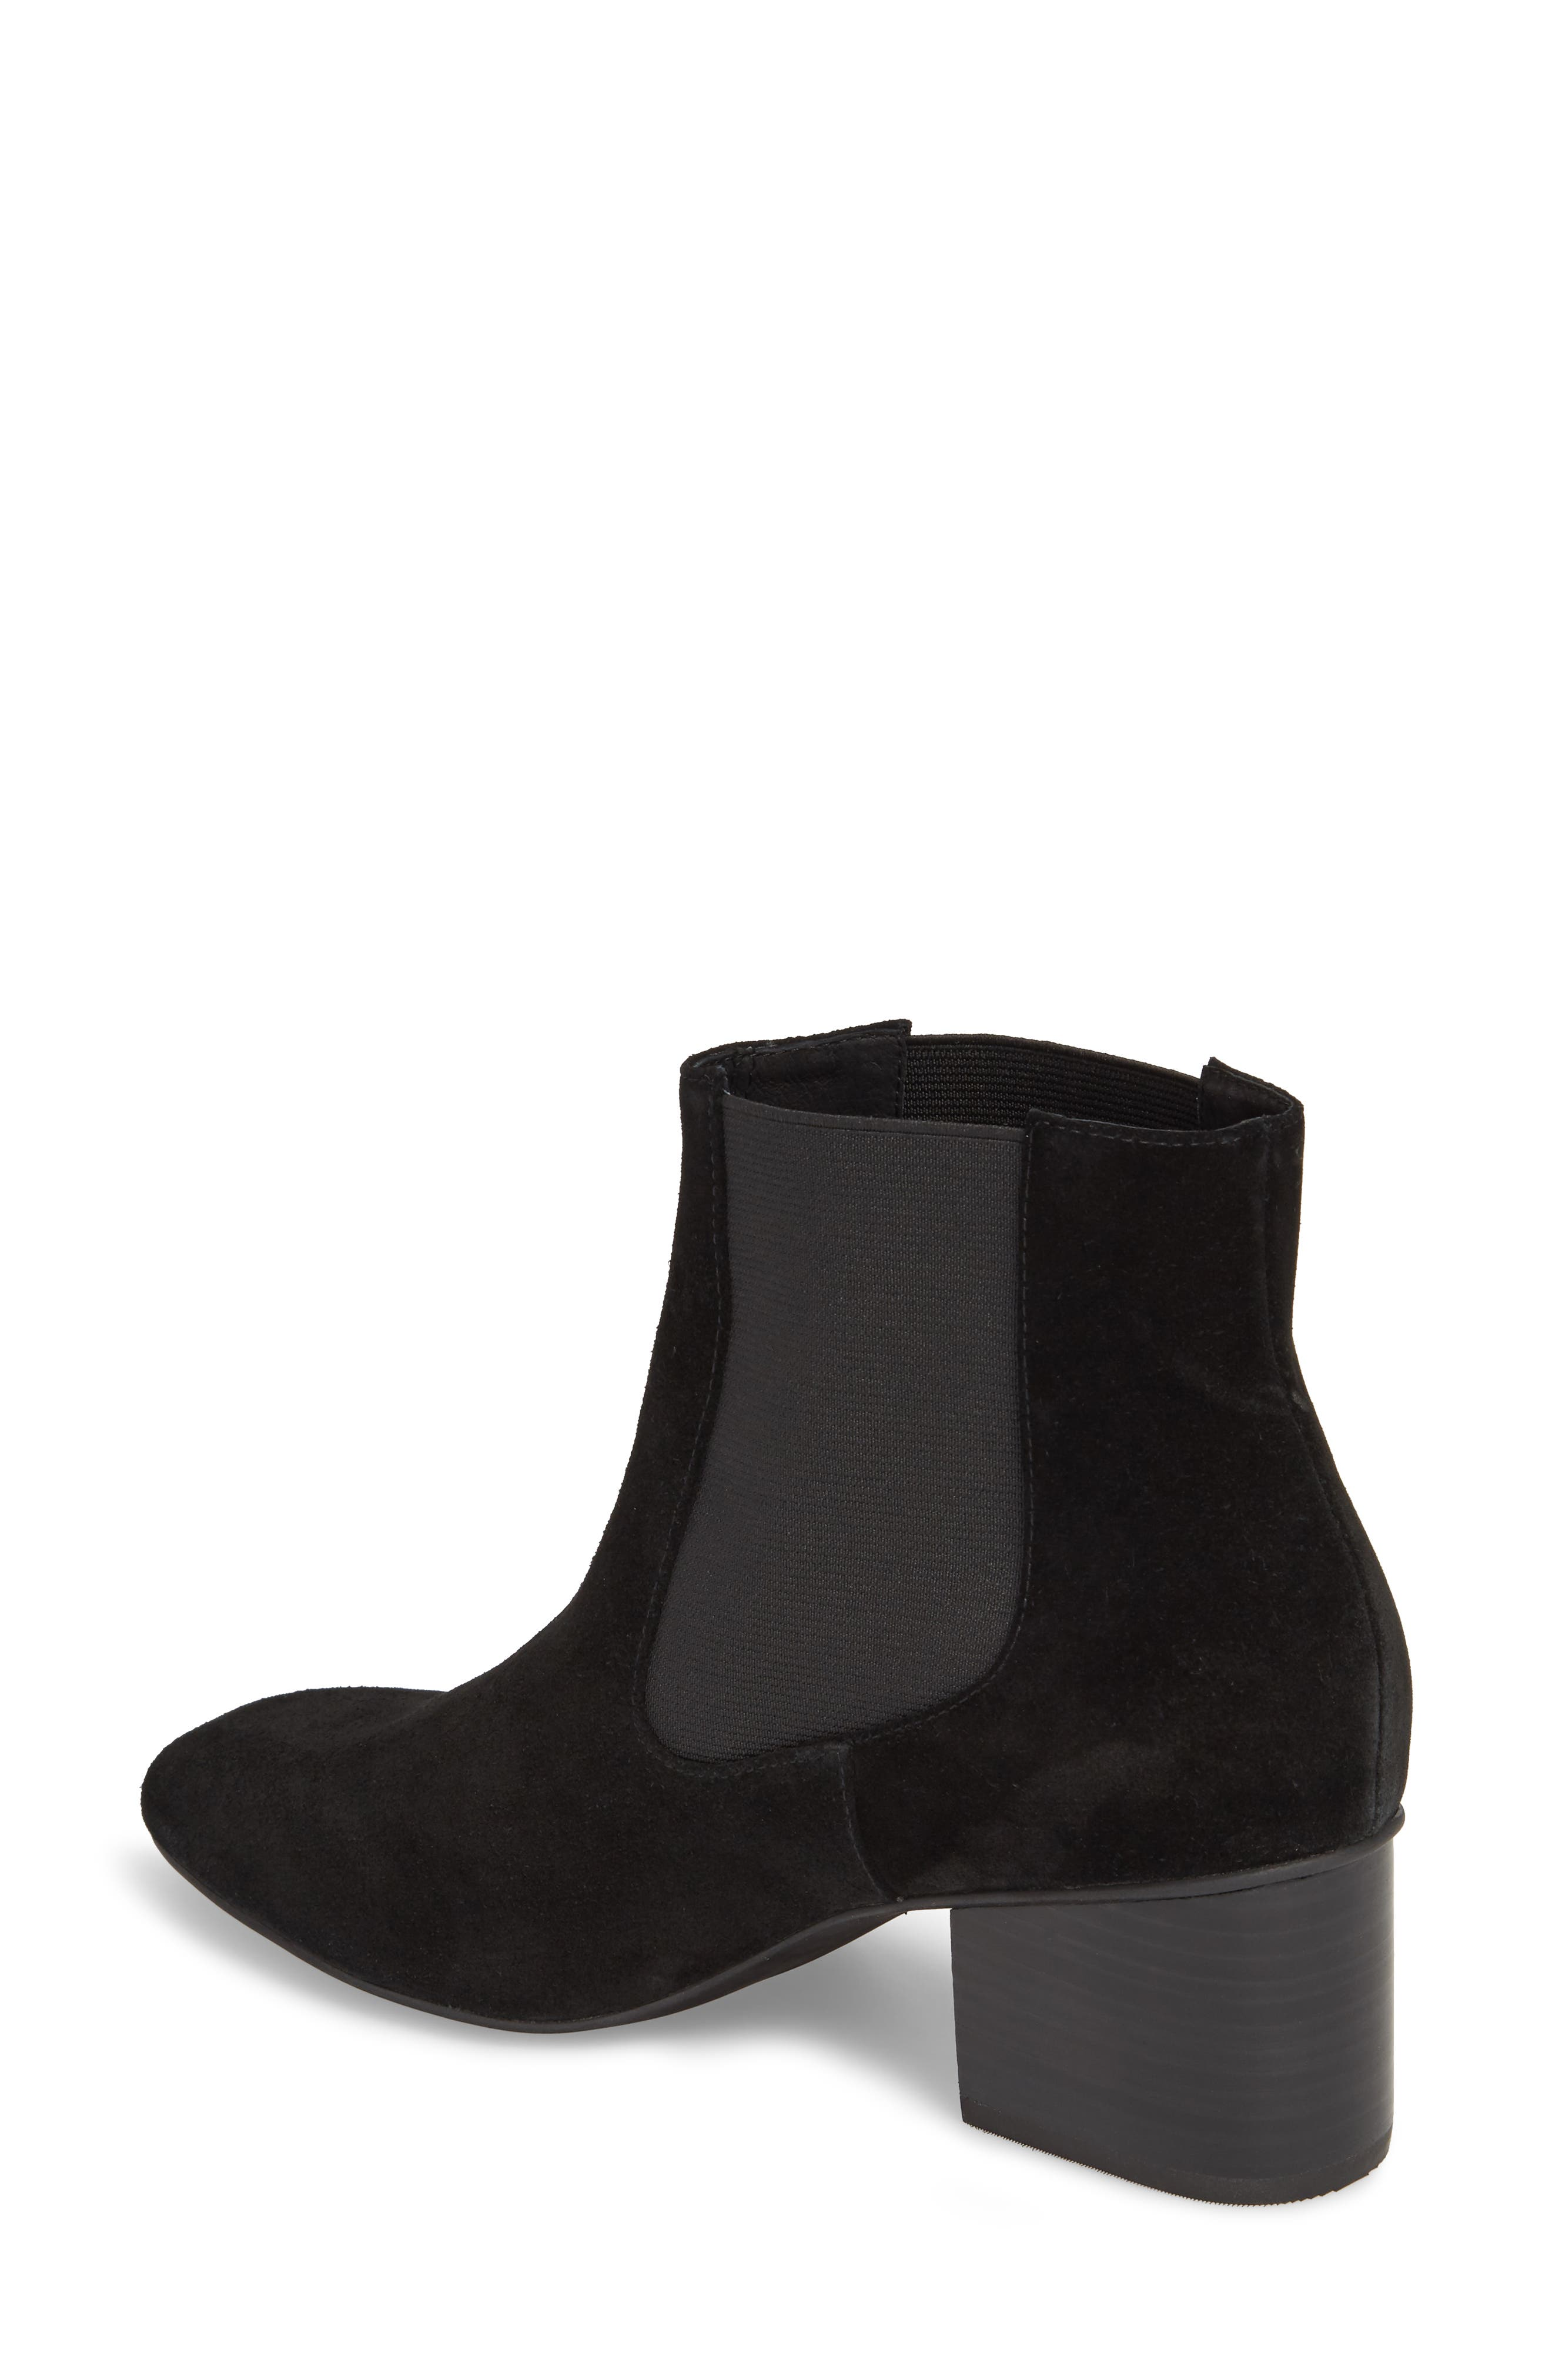 Tucker Chelsea Bootie,                             Alternate thumbnail 2, color,                             Black Leather